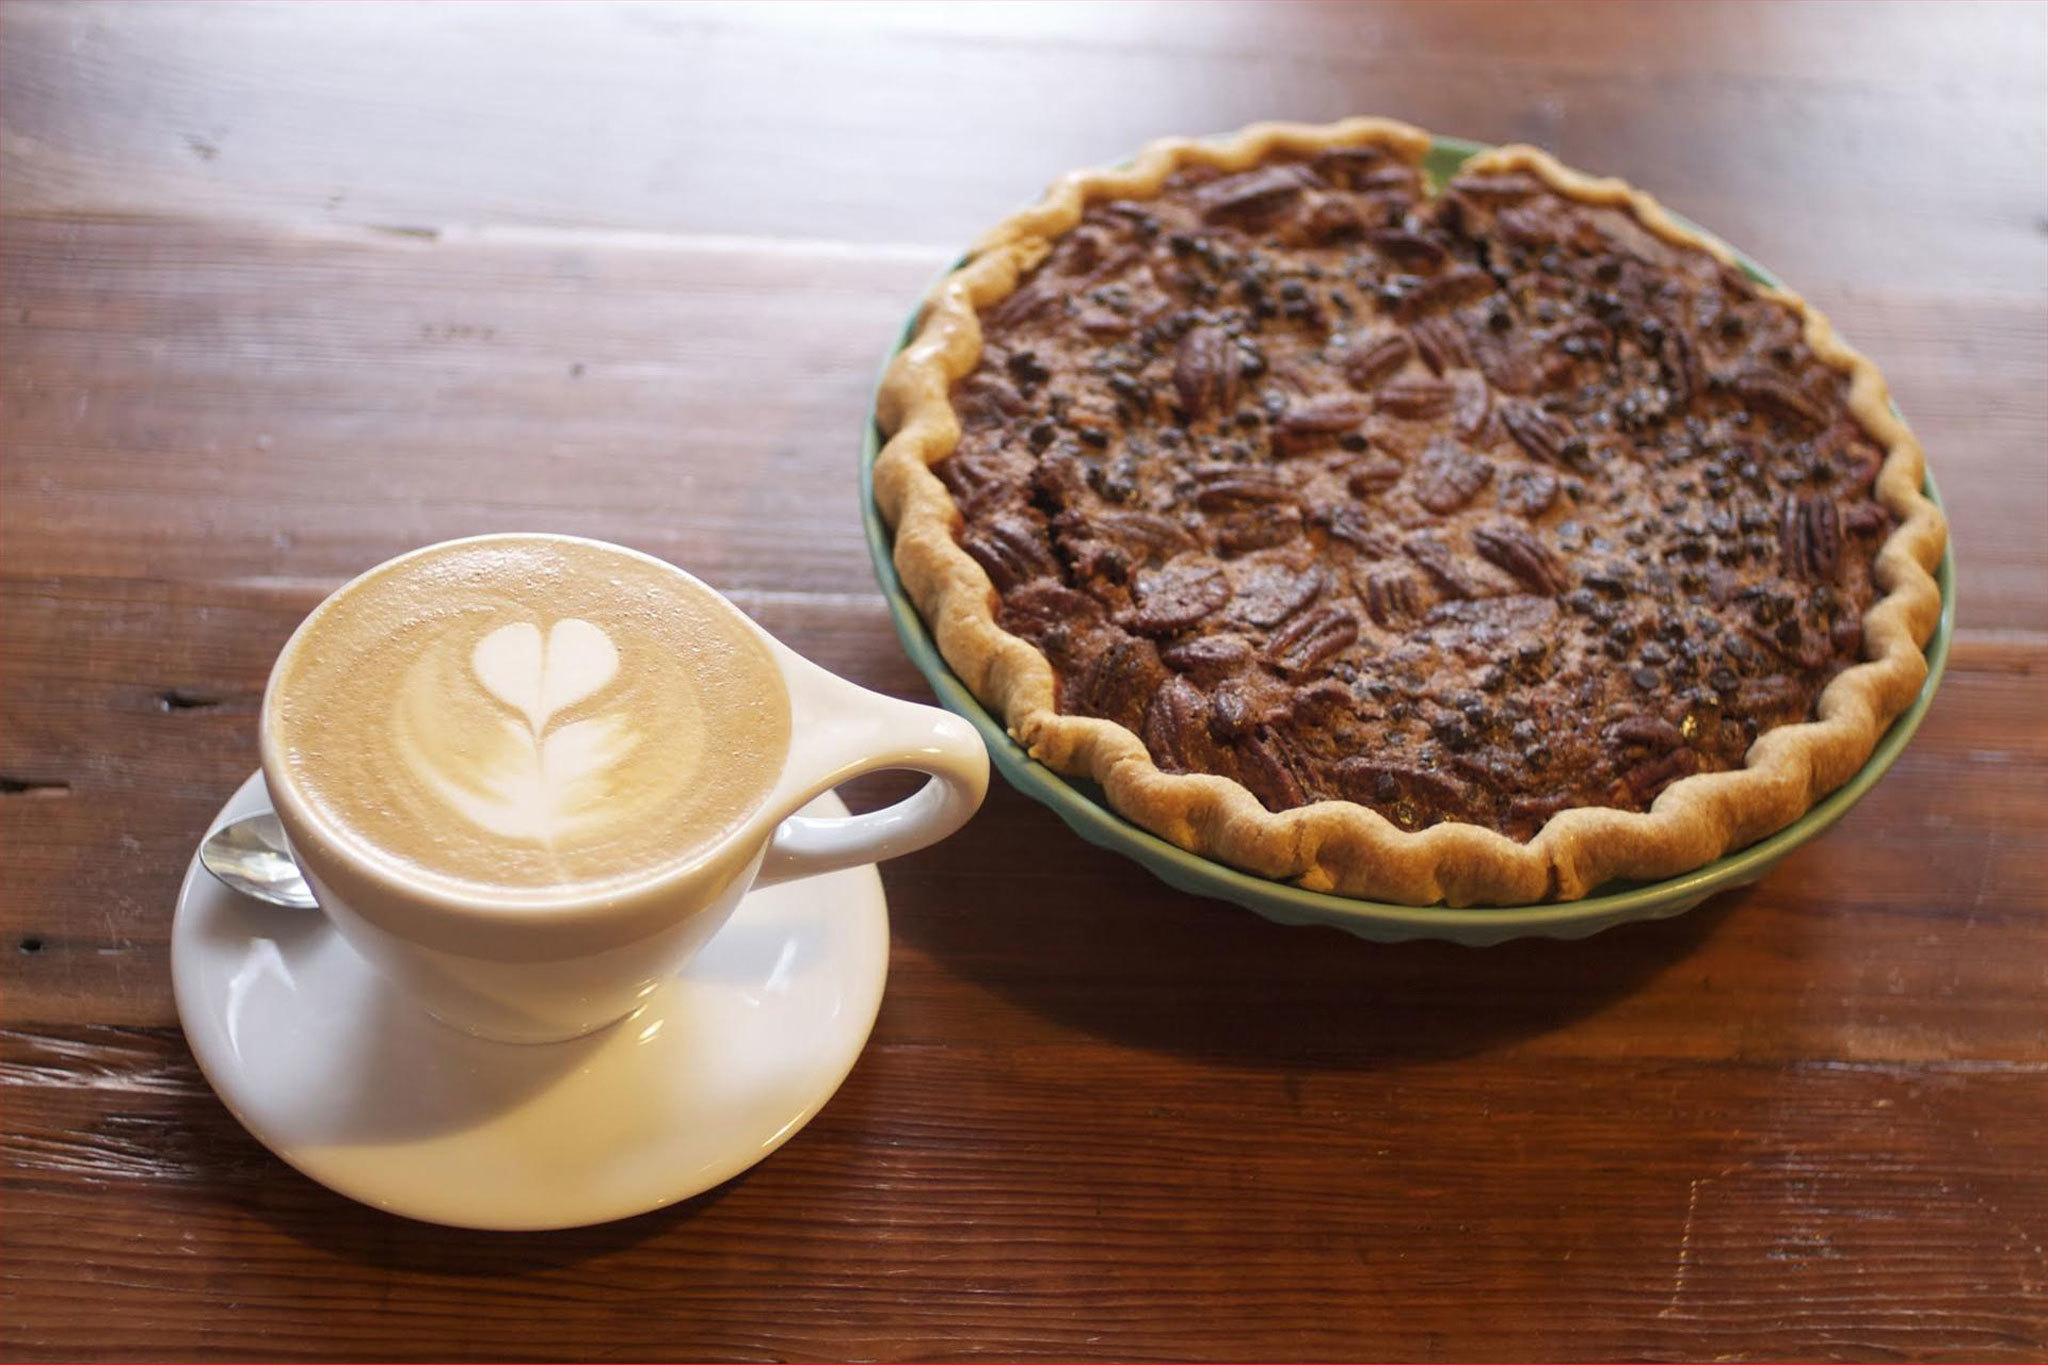 Cappuccino and pecan pie at Republic of Pie.